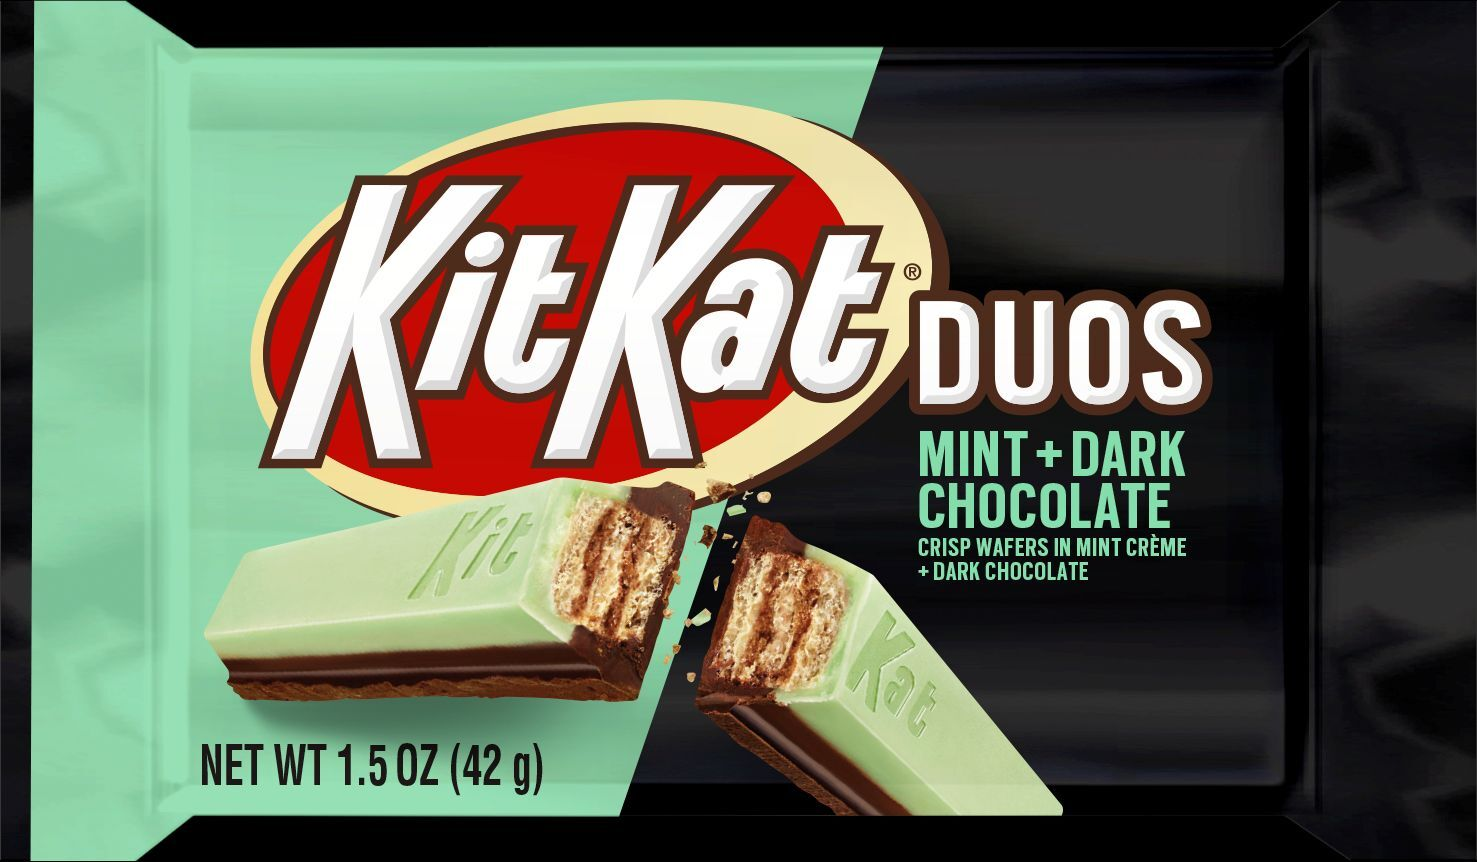 KIT KAT Duos Mint + Dark Chocolate is the mash-up you need